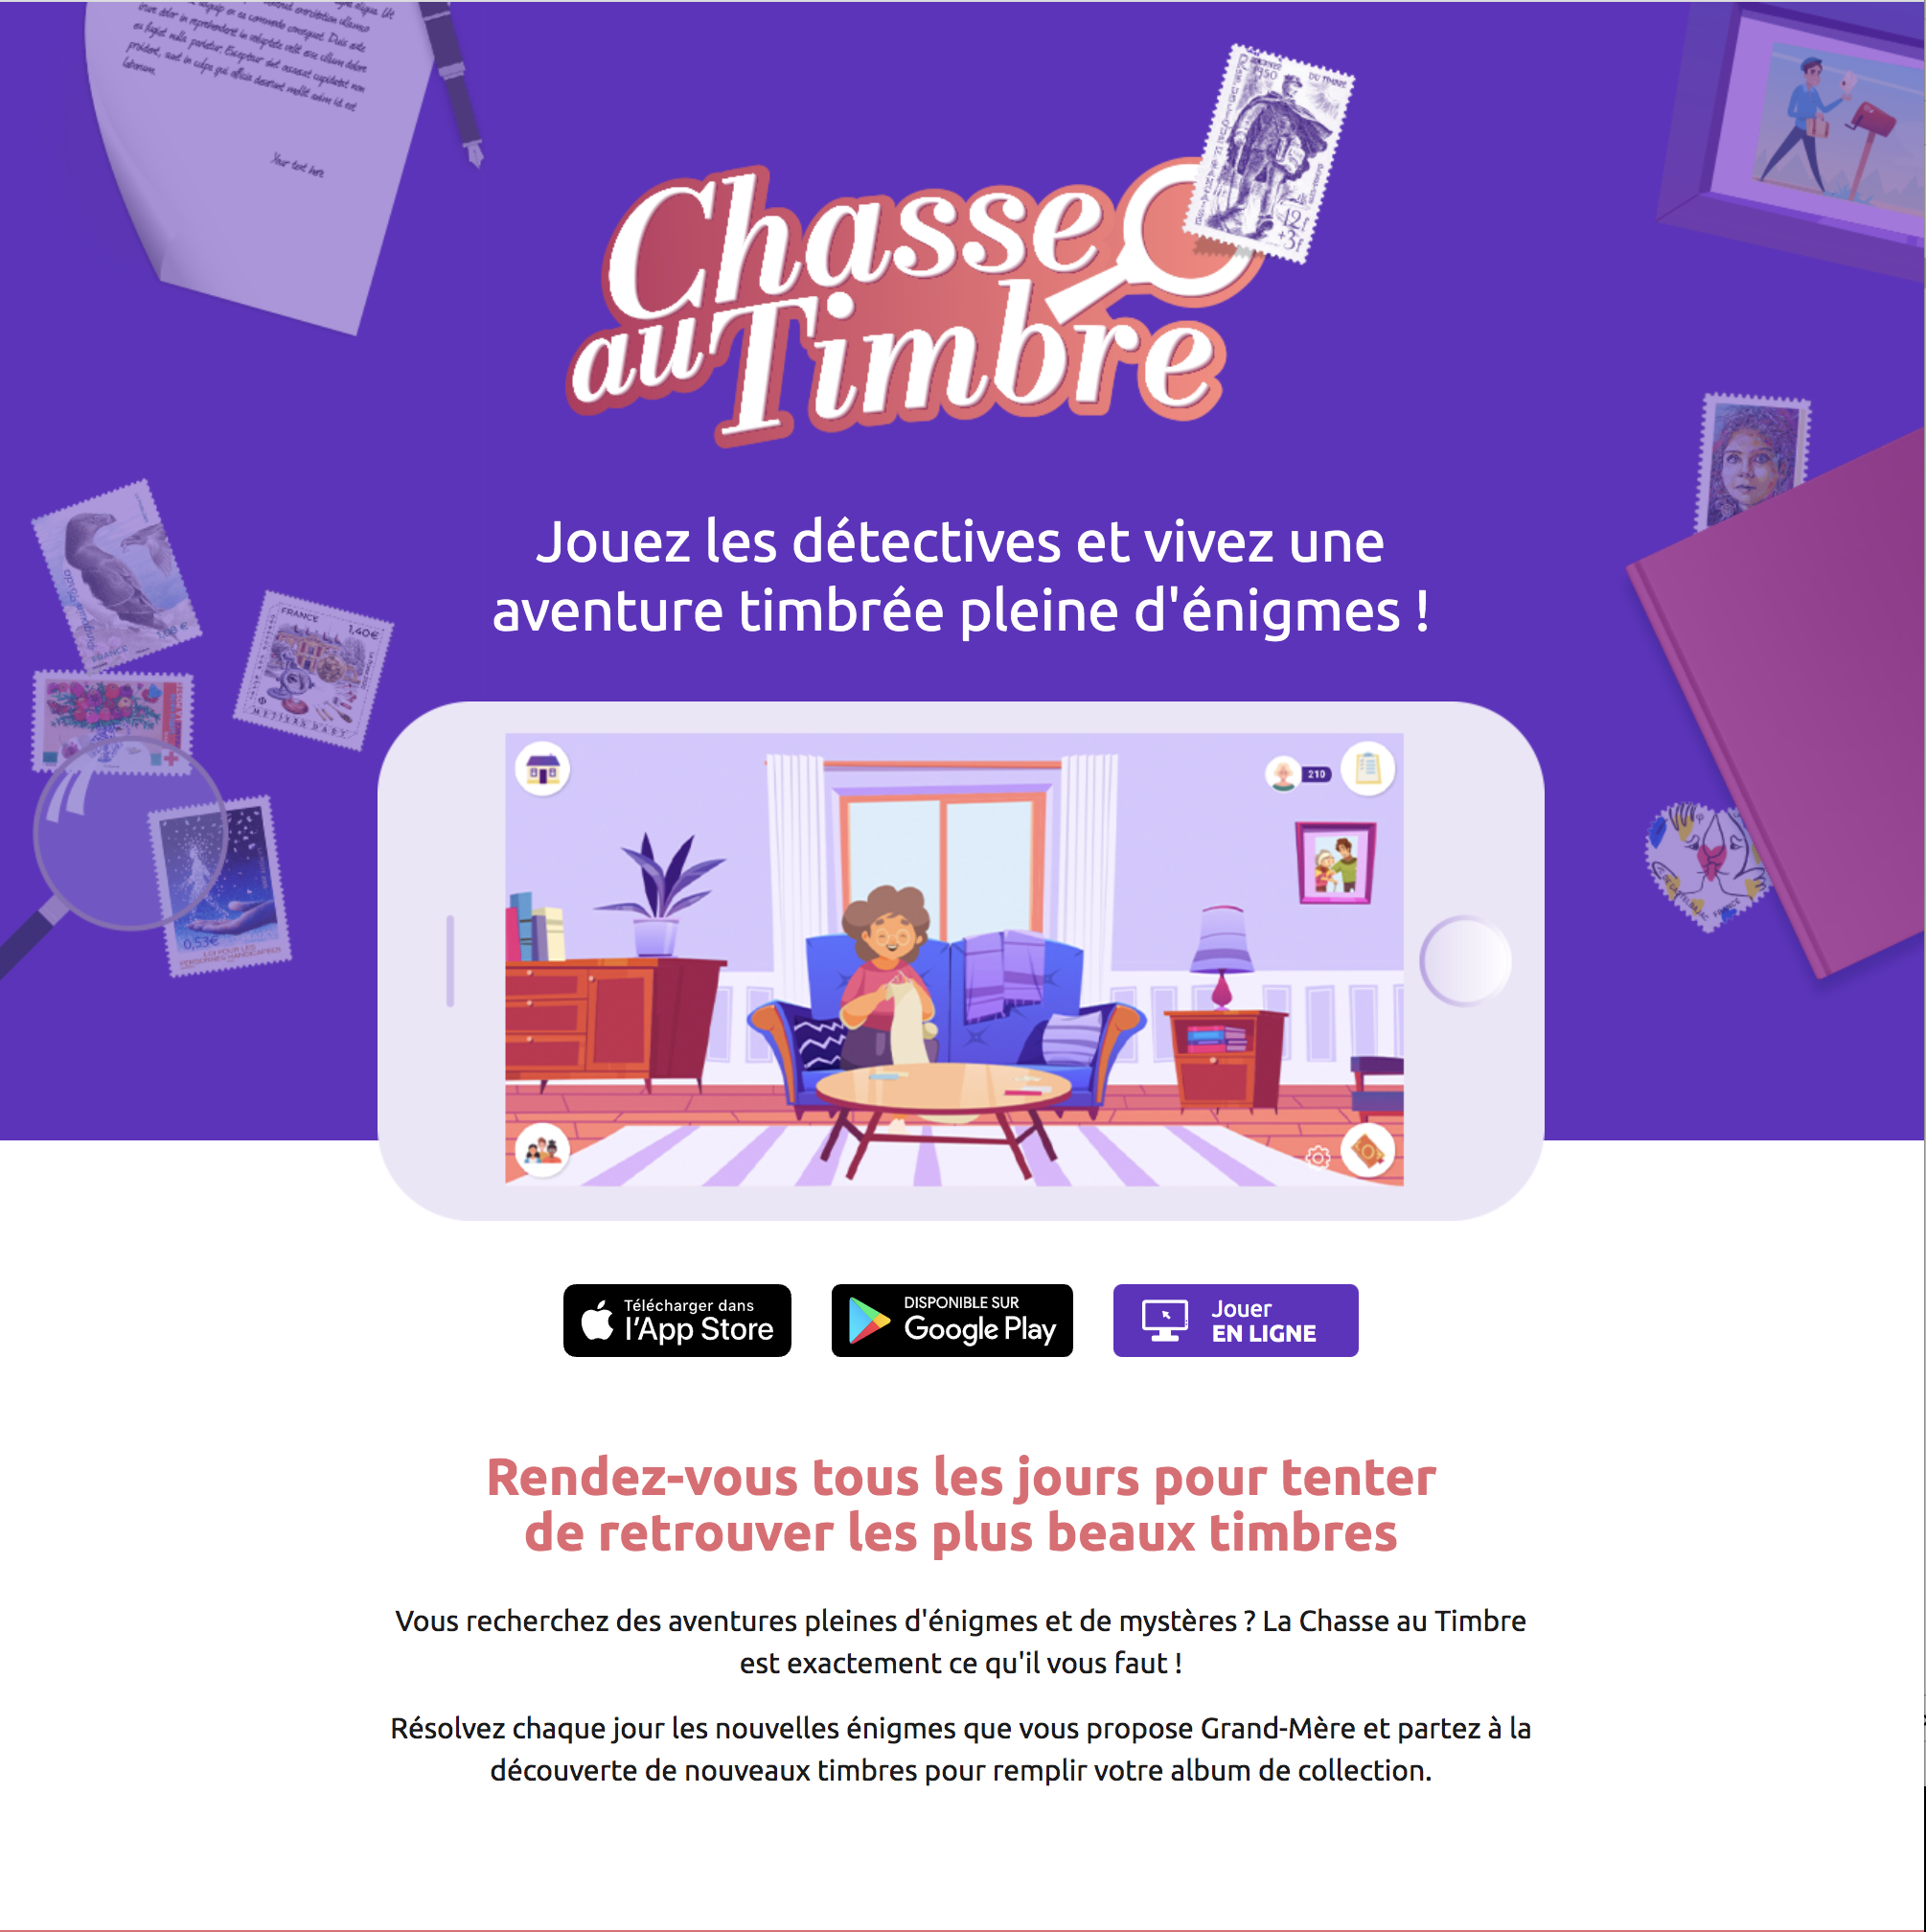 Chasse aux Timbres